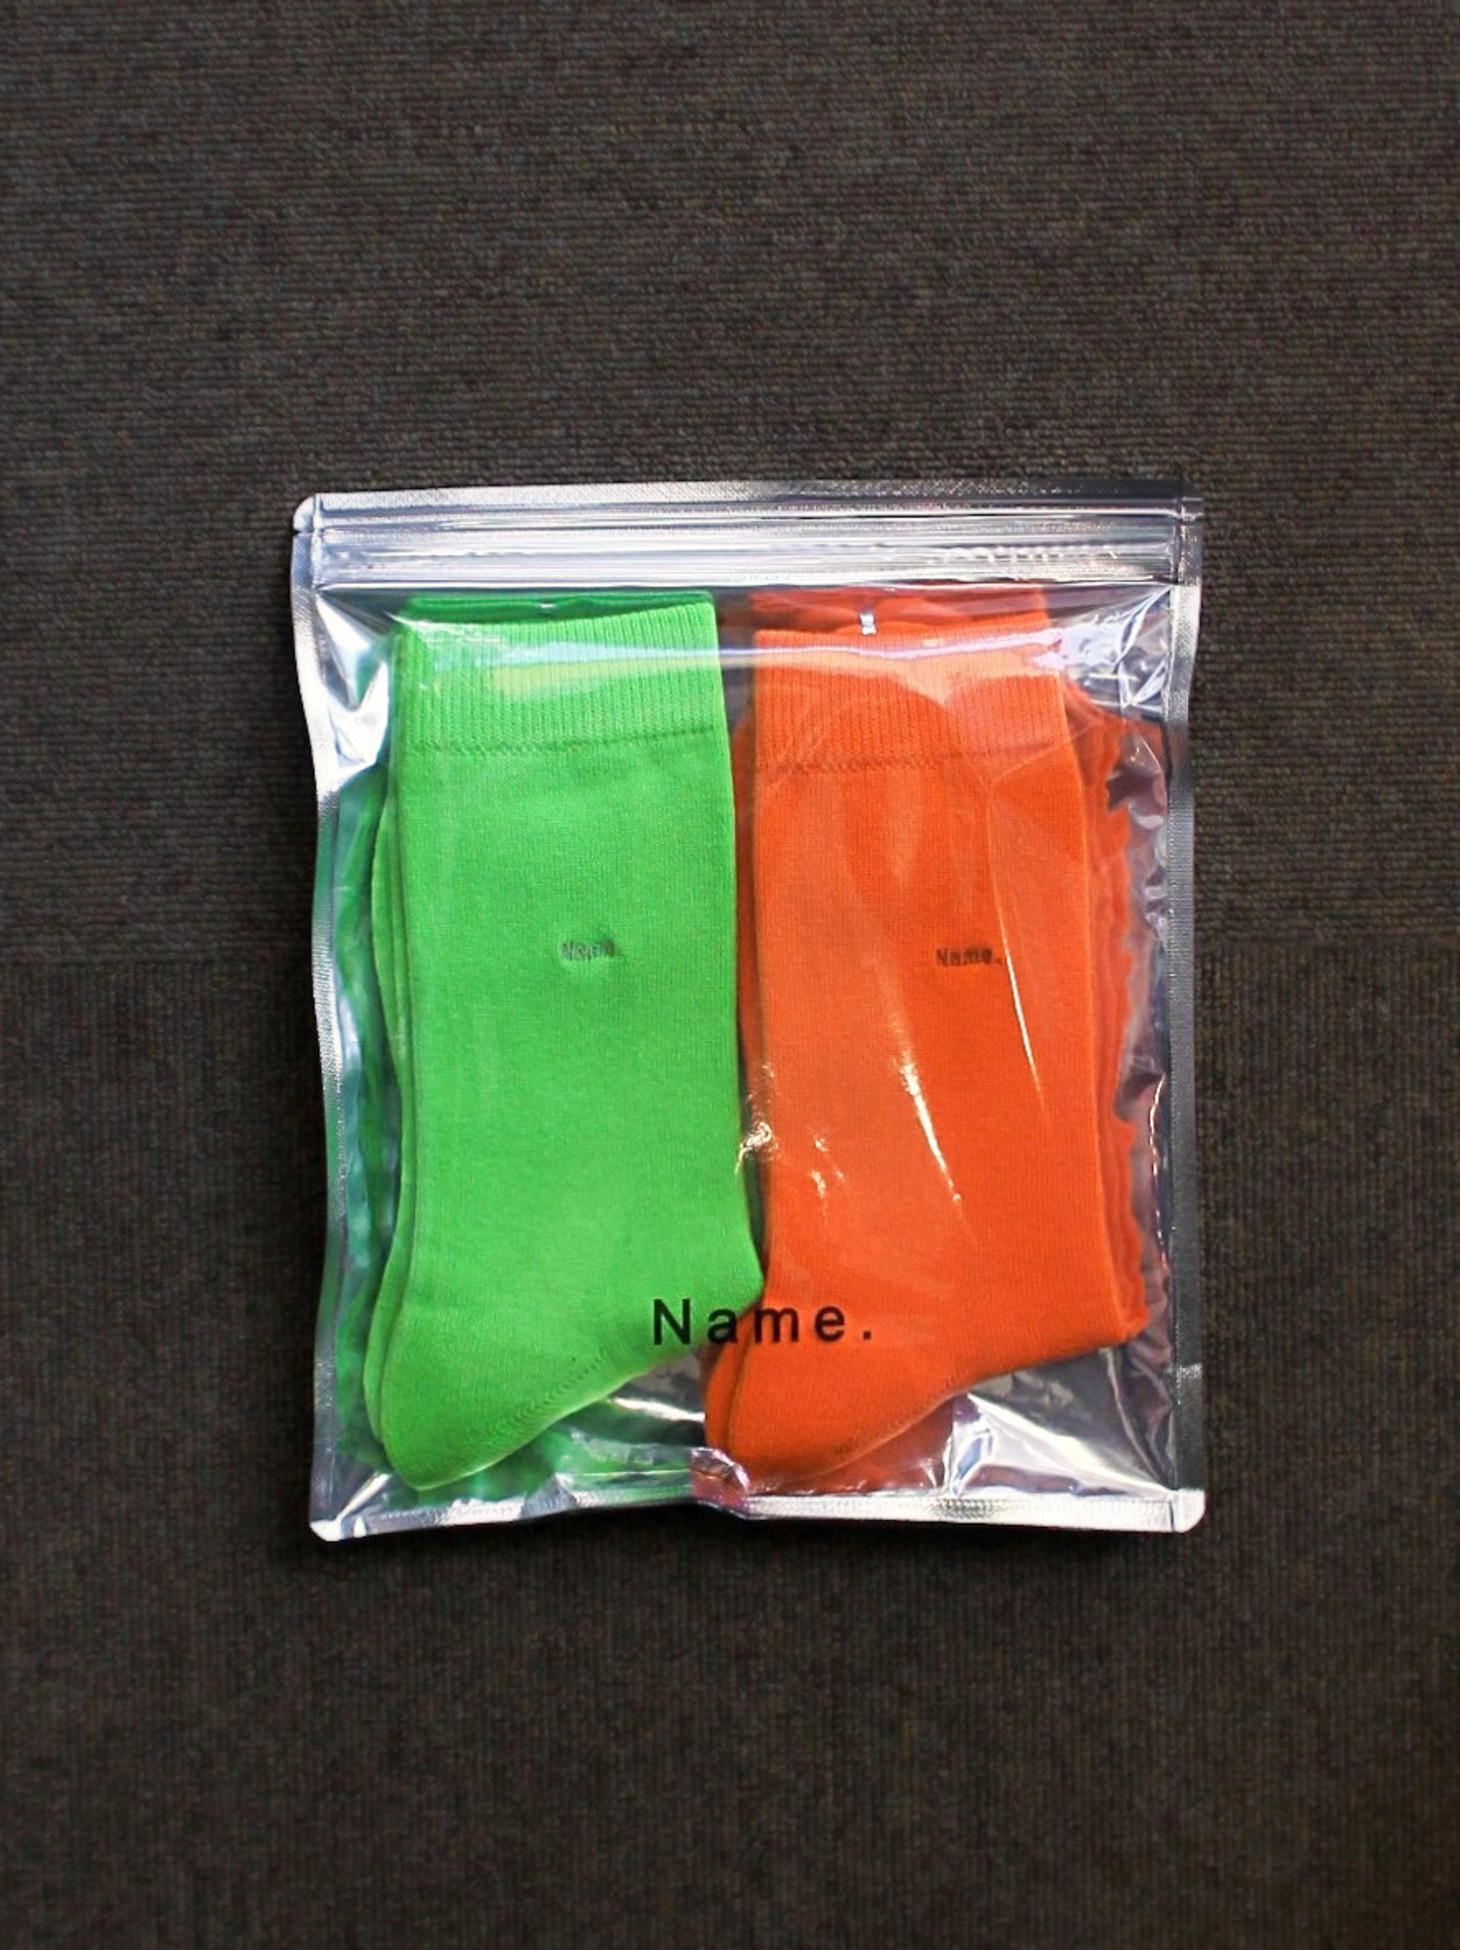 [Name.] 2 Pair Socks - Lime Green & Orange